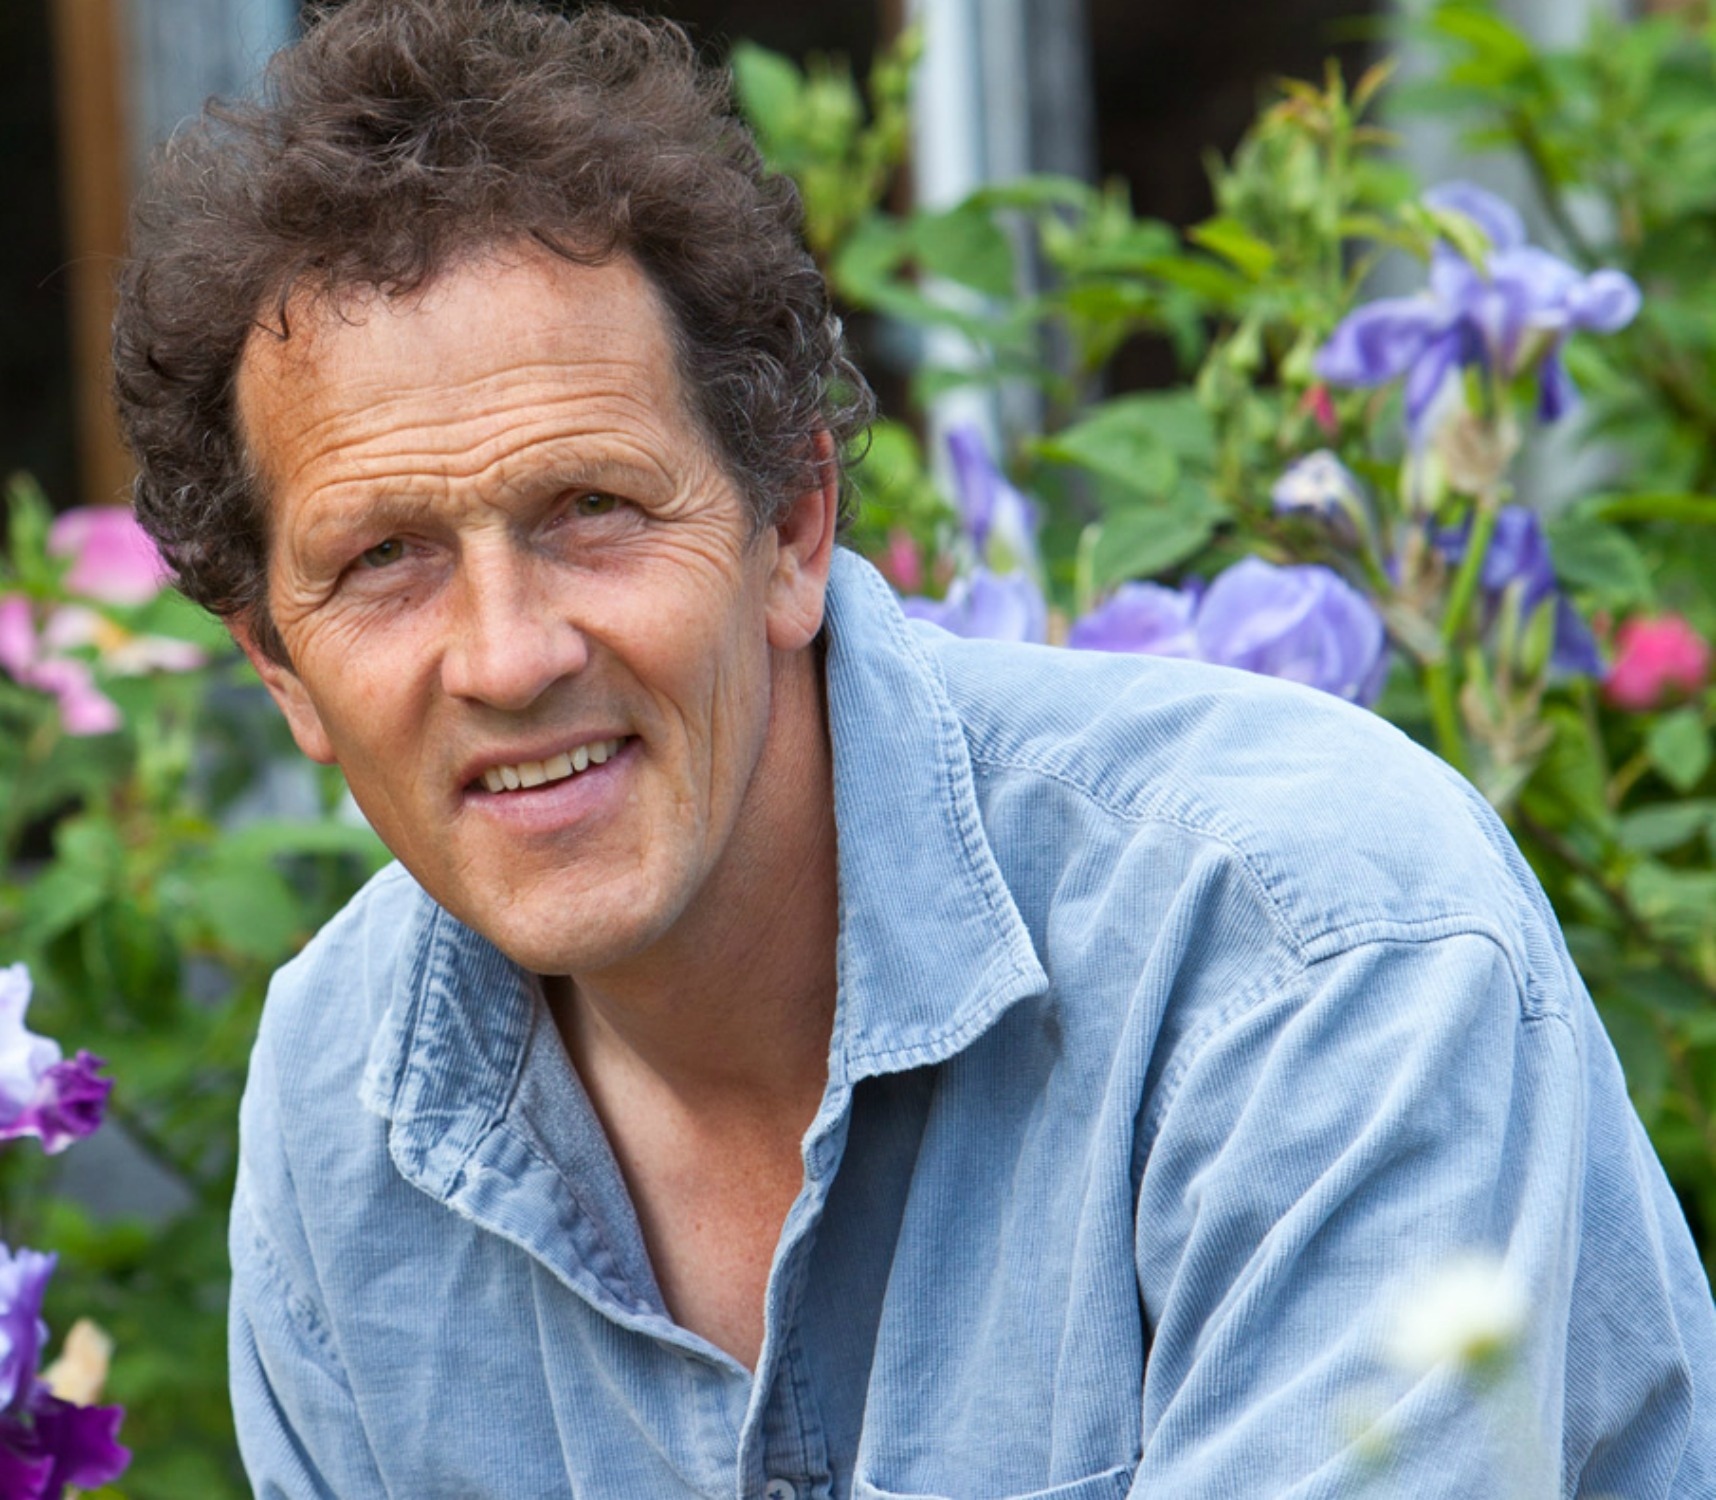 Gardeners' World 2016 (playlist) all 30 episodes